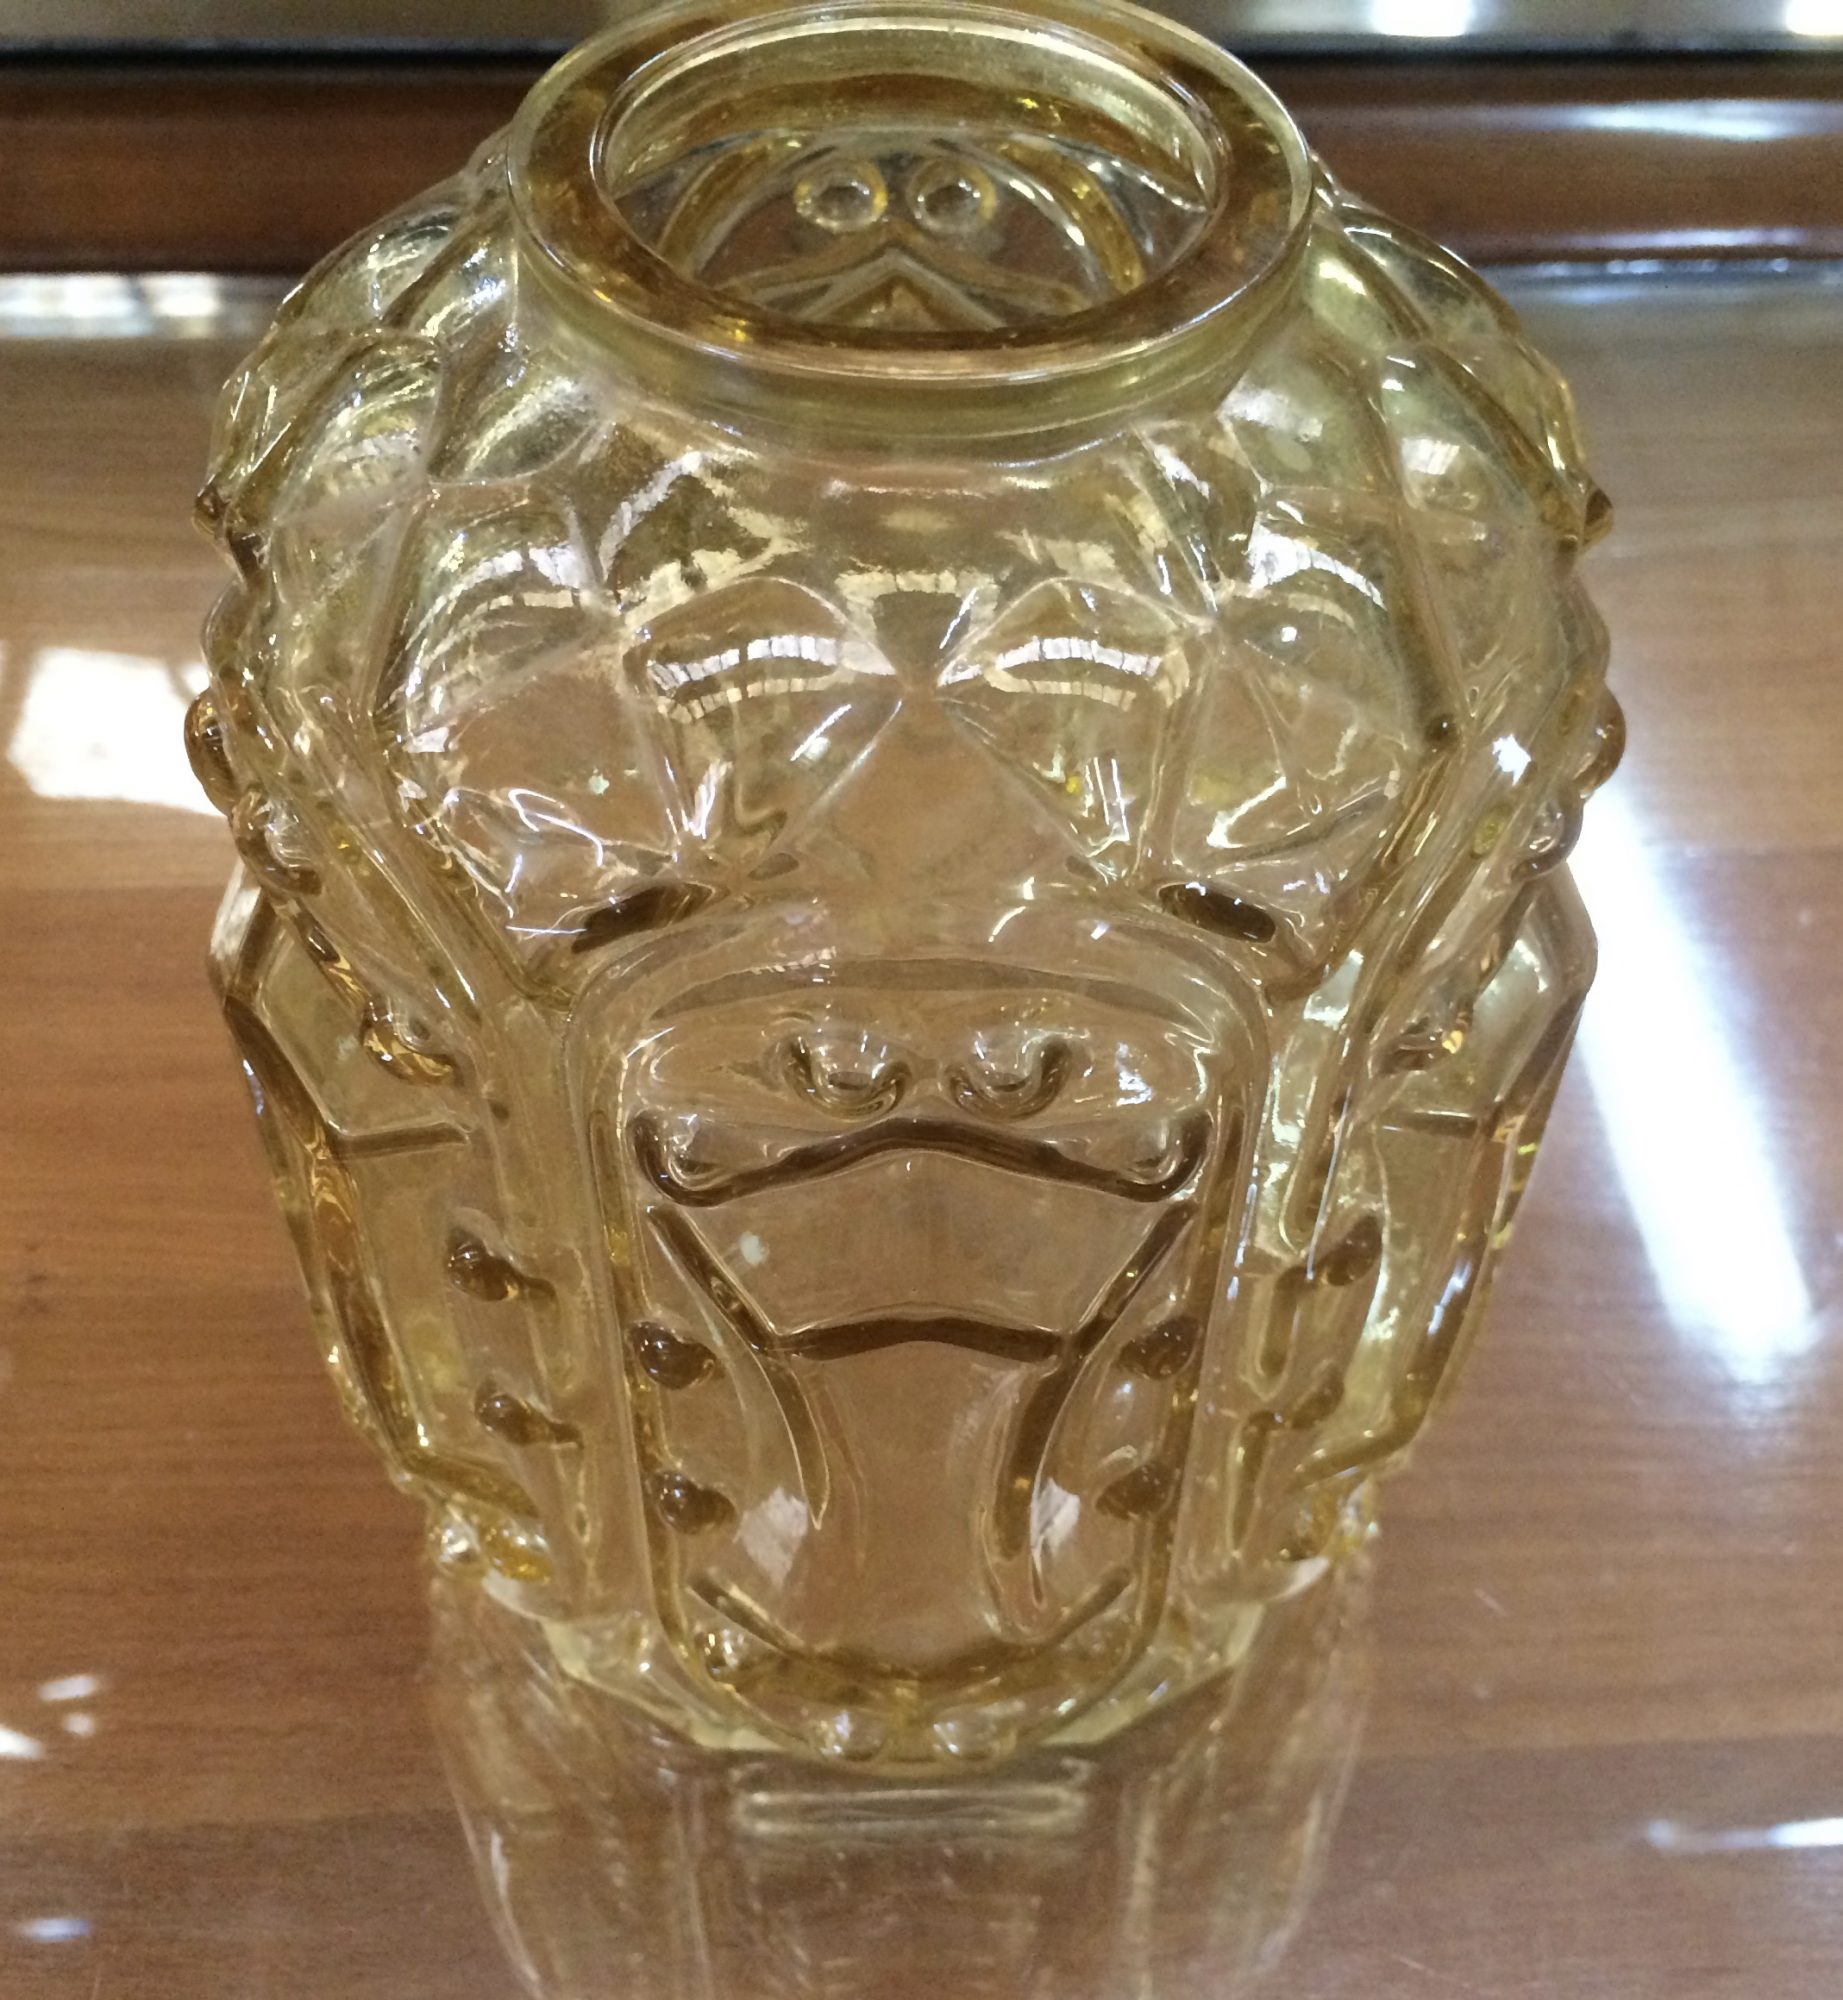 Vintage Retro Ceiling Light Shade Amber Glass | Melbourne | Halsey Road Reccylers